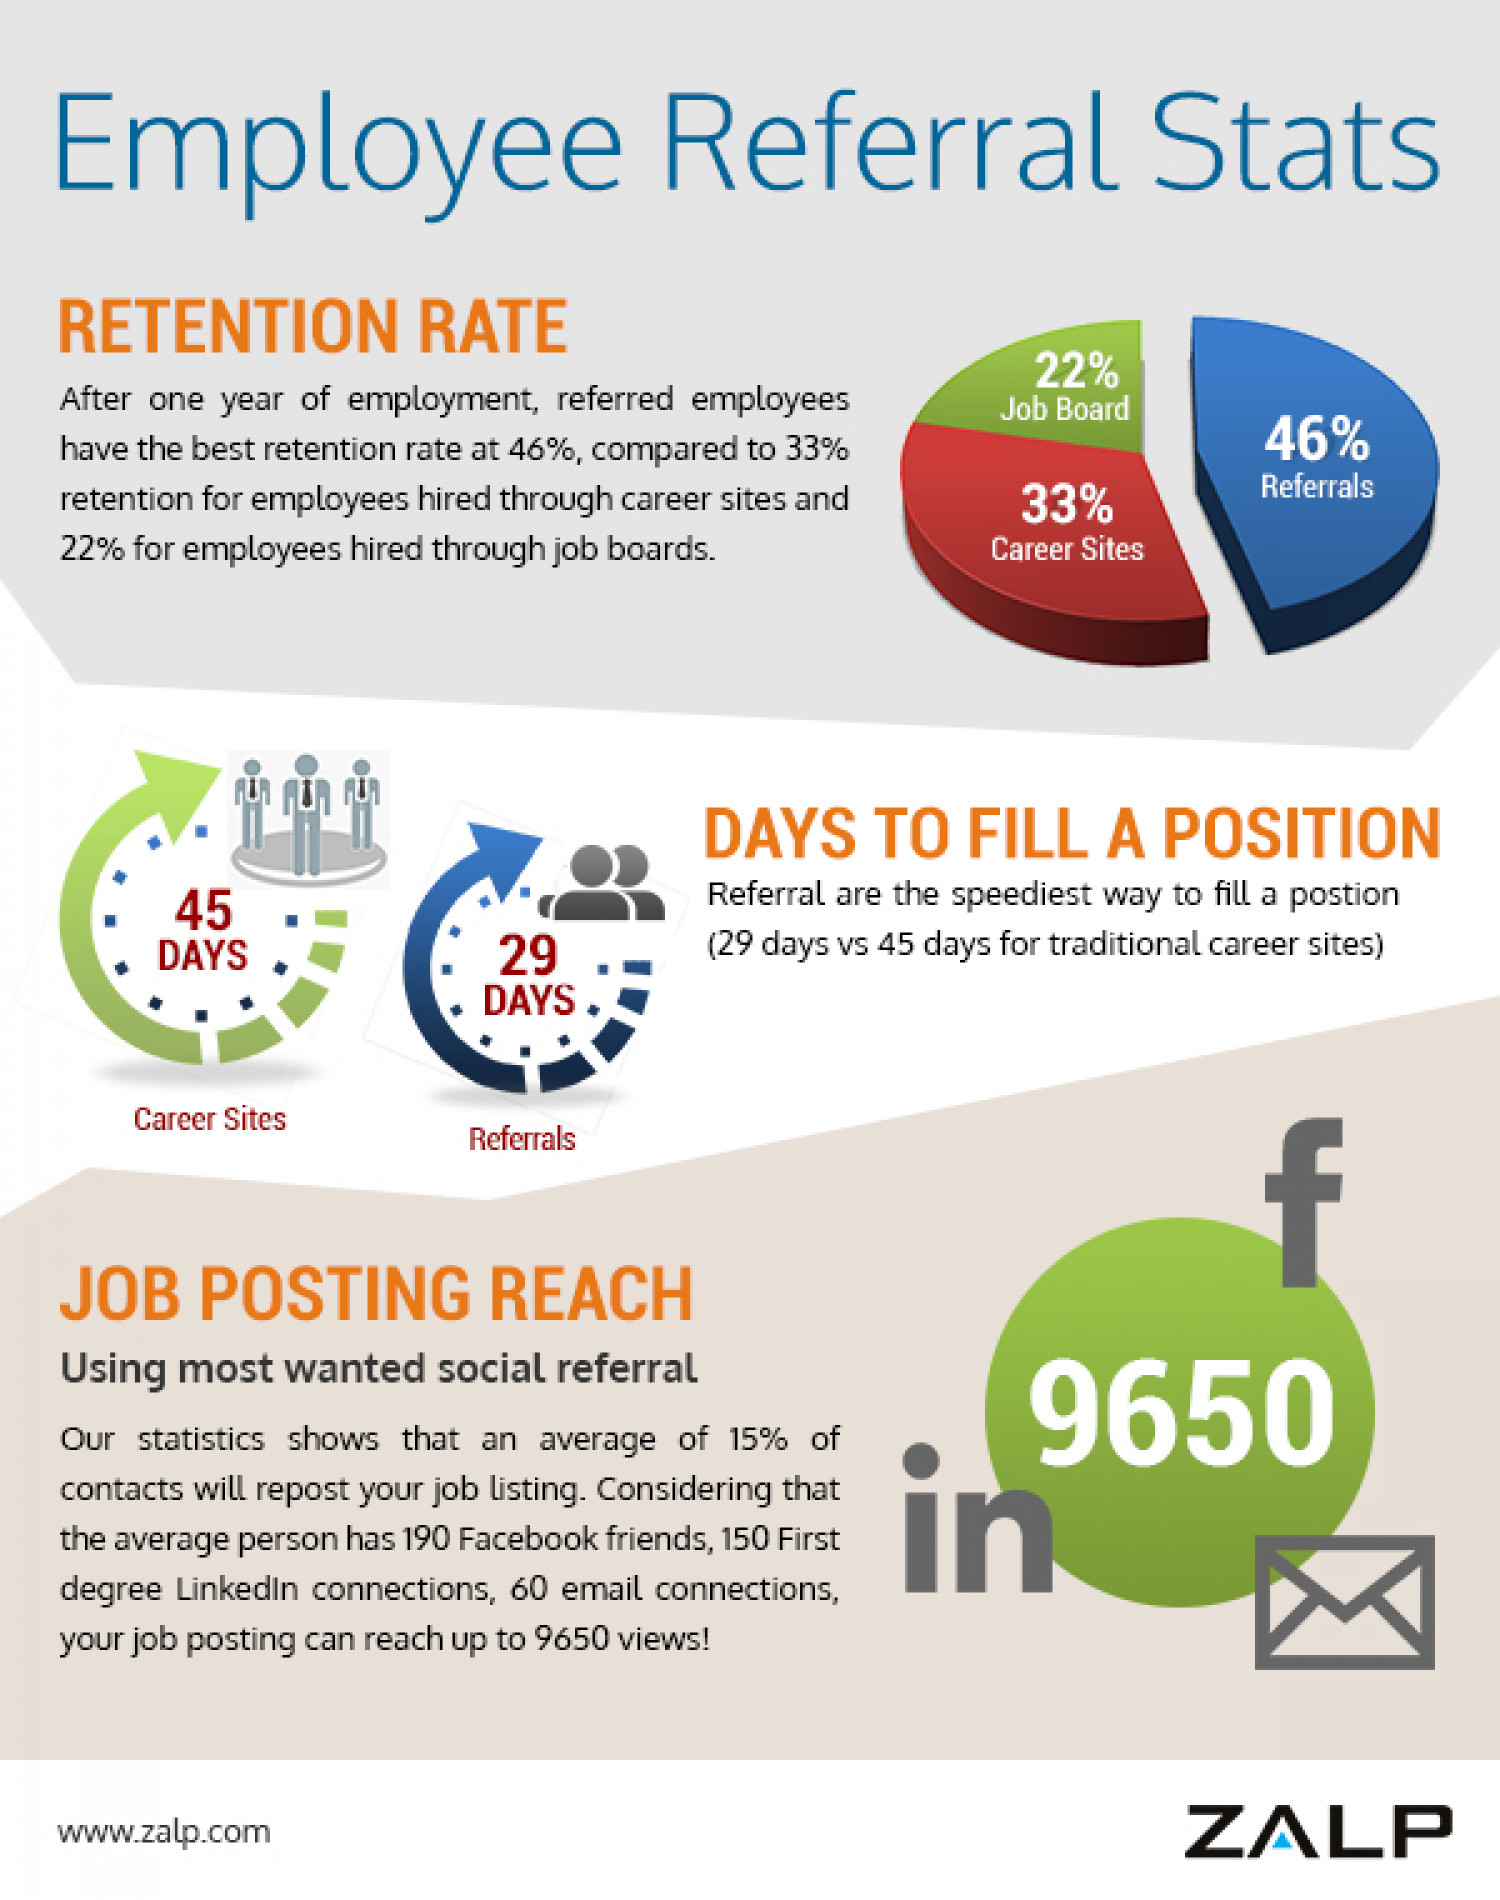 employee referral stats visual ly employee referral stats infographic